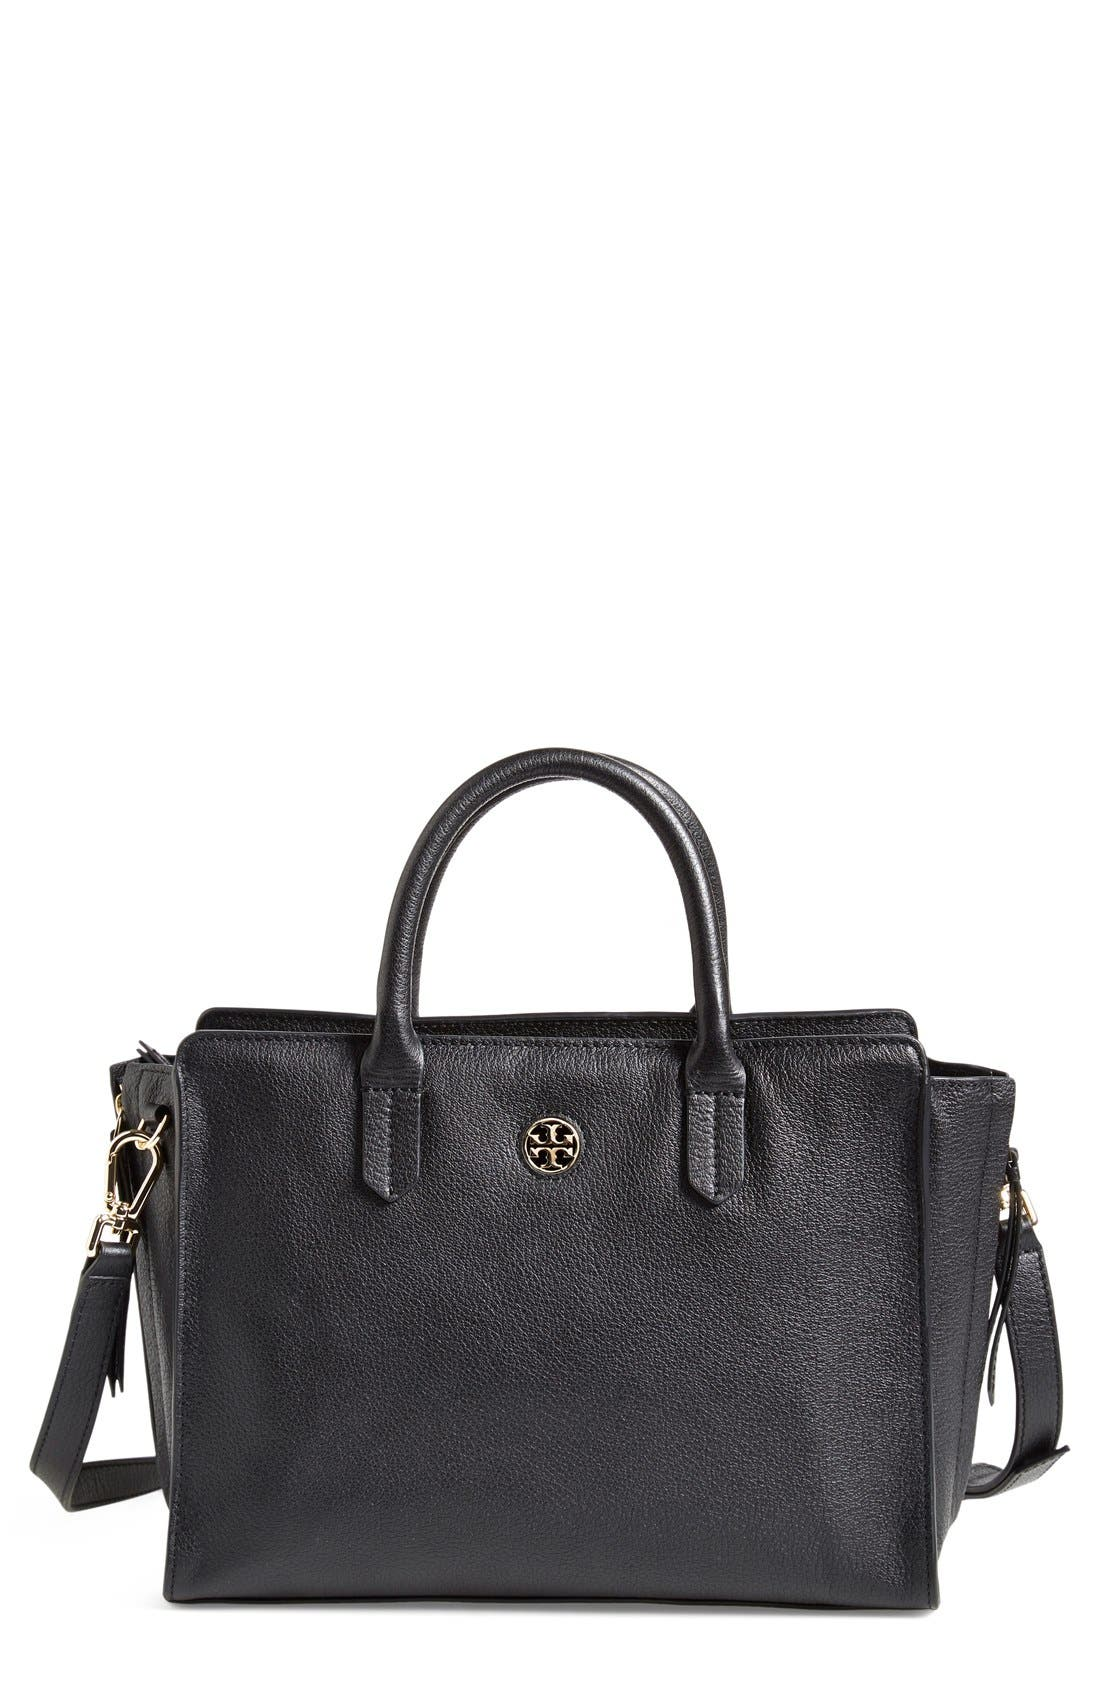 Alternate Image 1 Selected - Tory Burch 'Small Brody' Tote